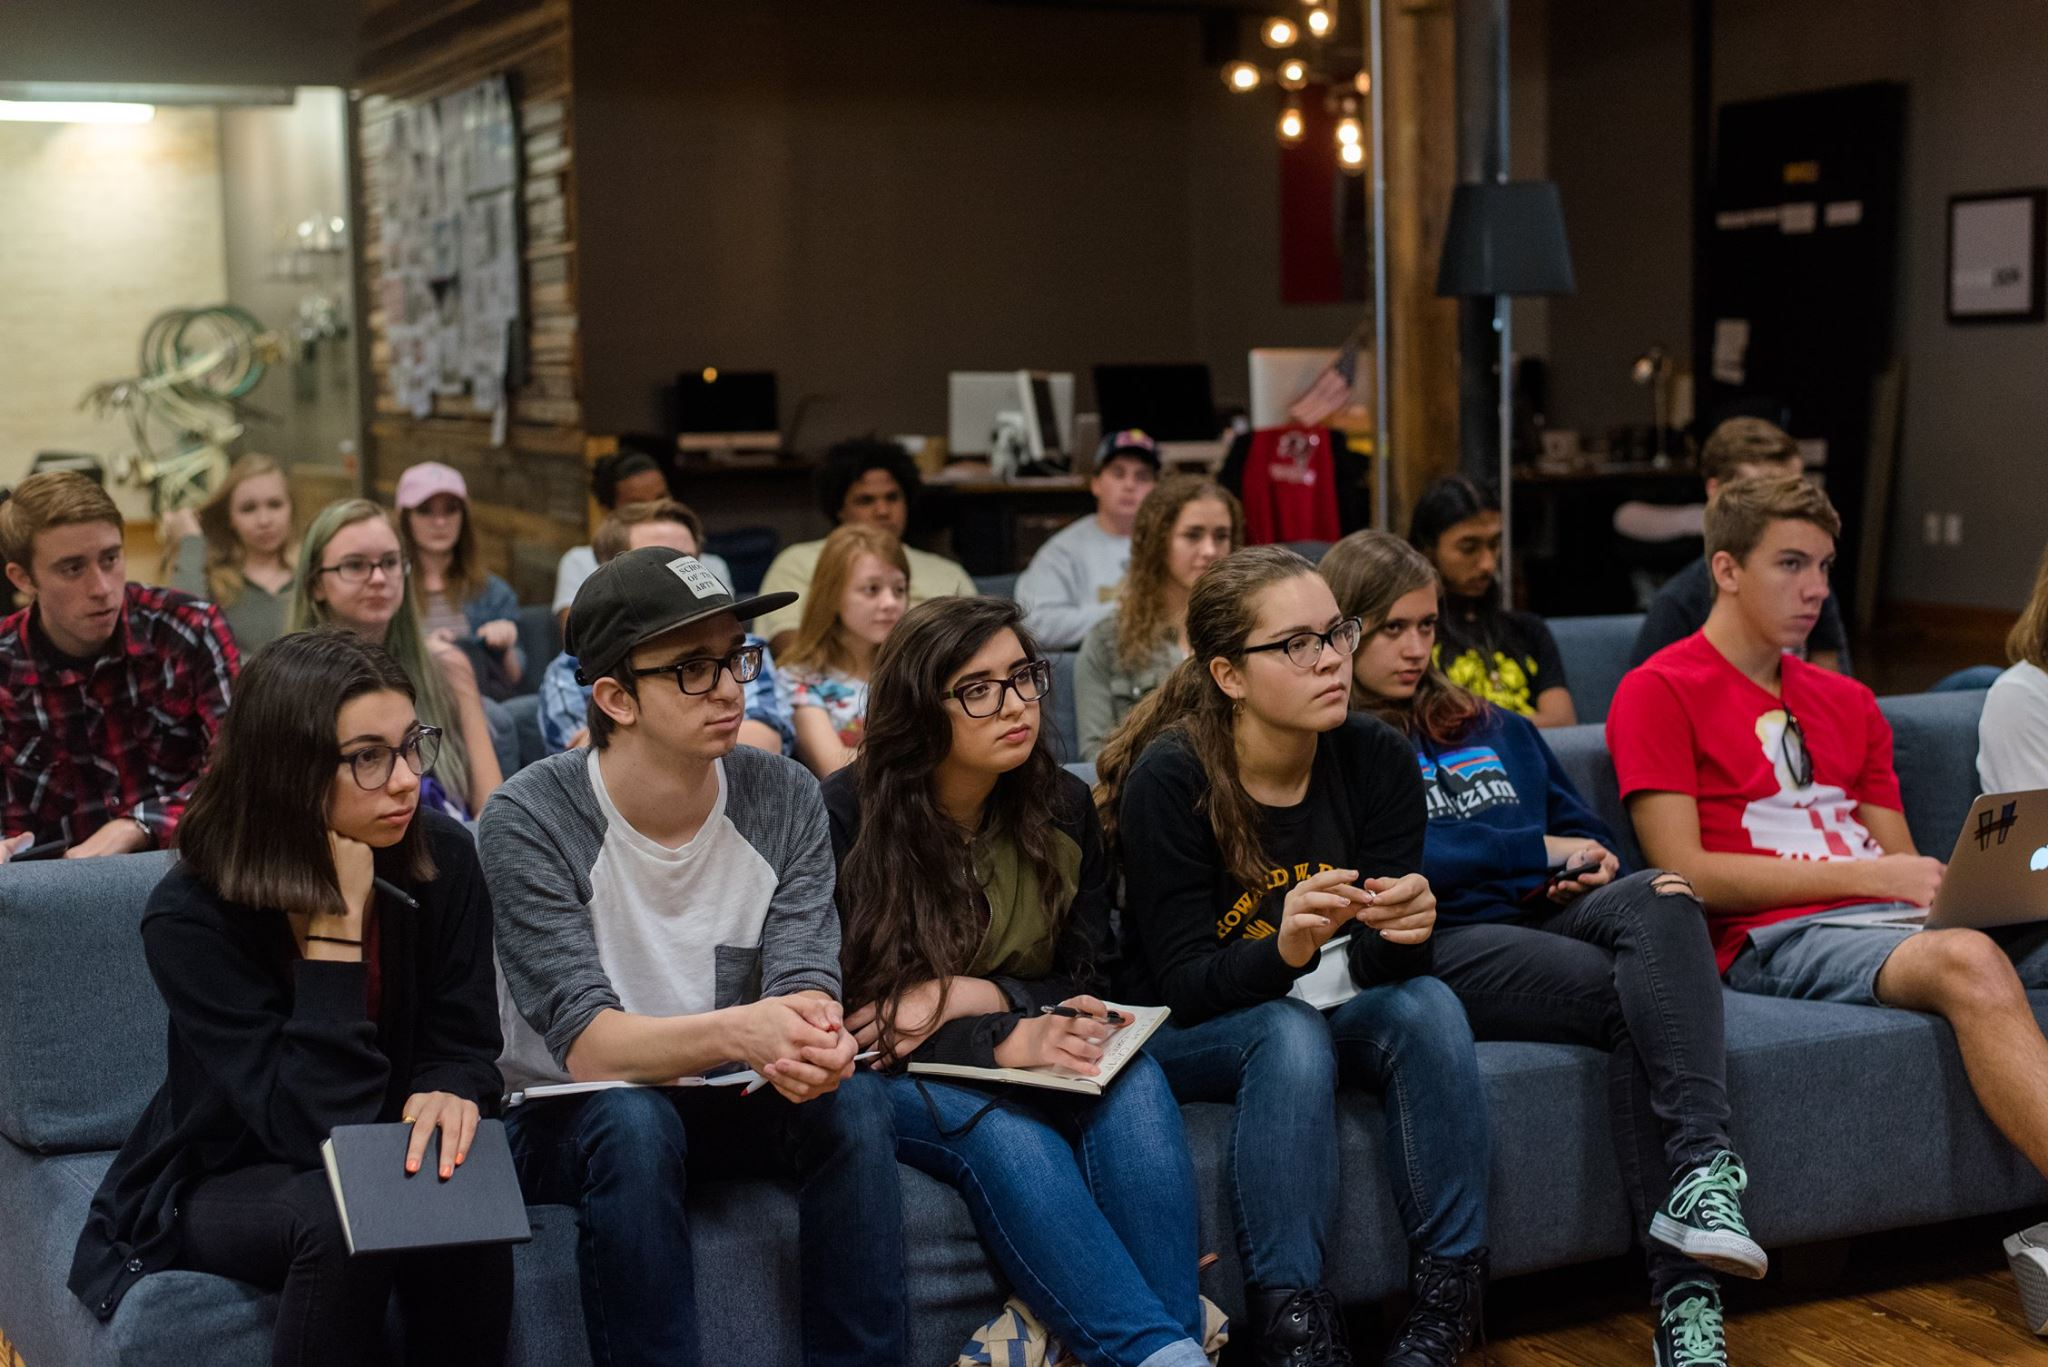 Hands-on production camp for young Bay area filmmakers -